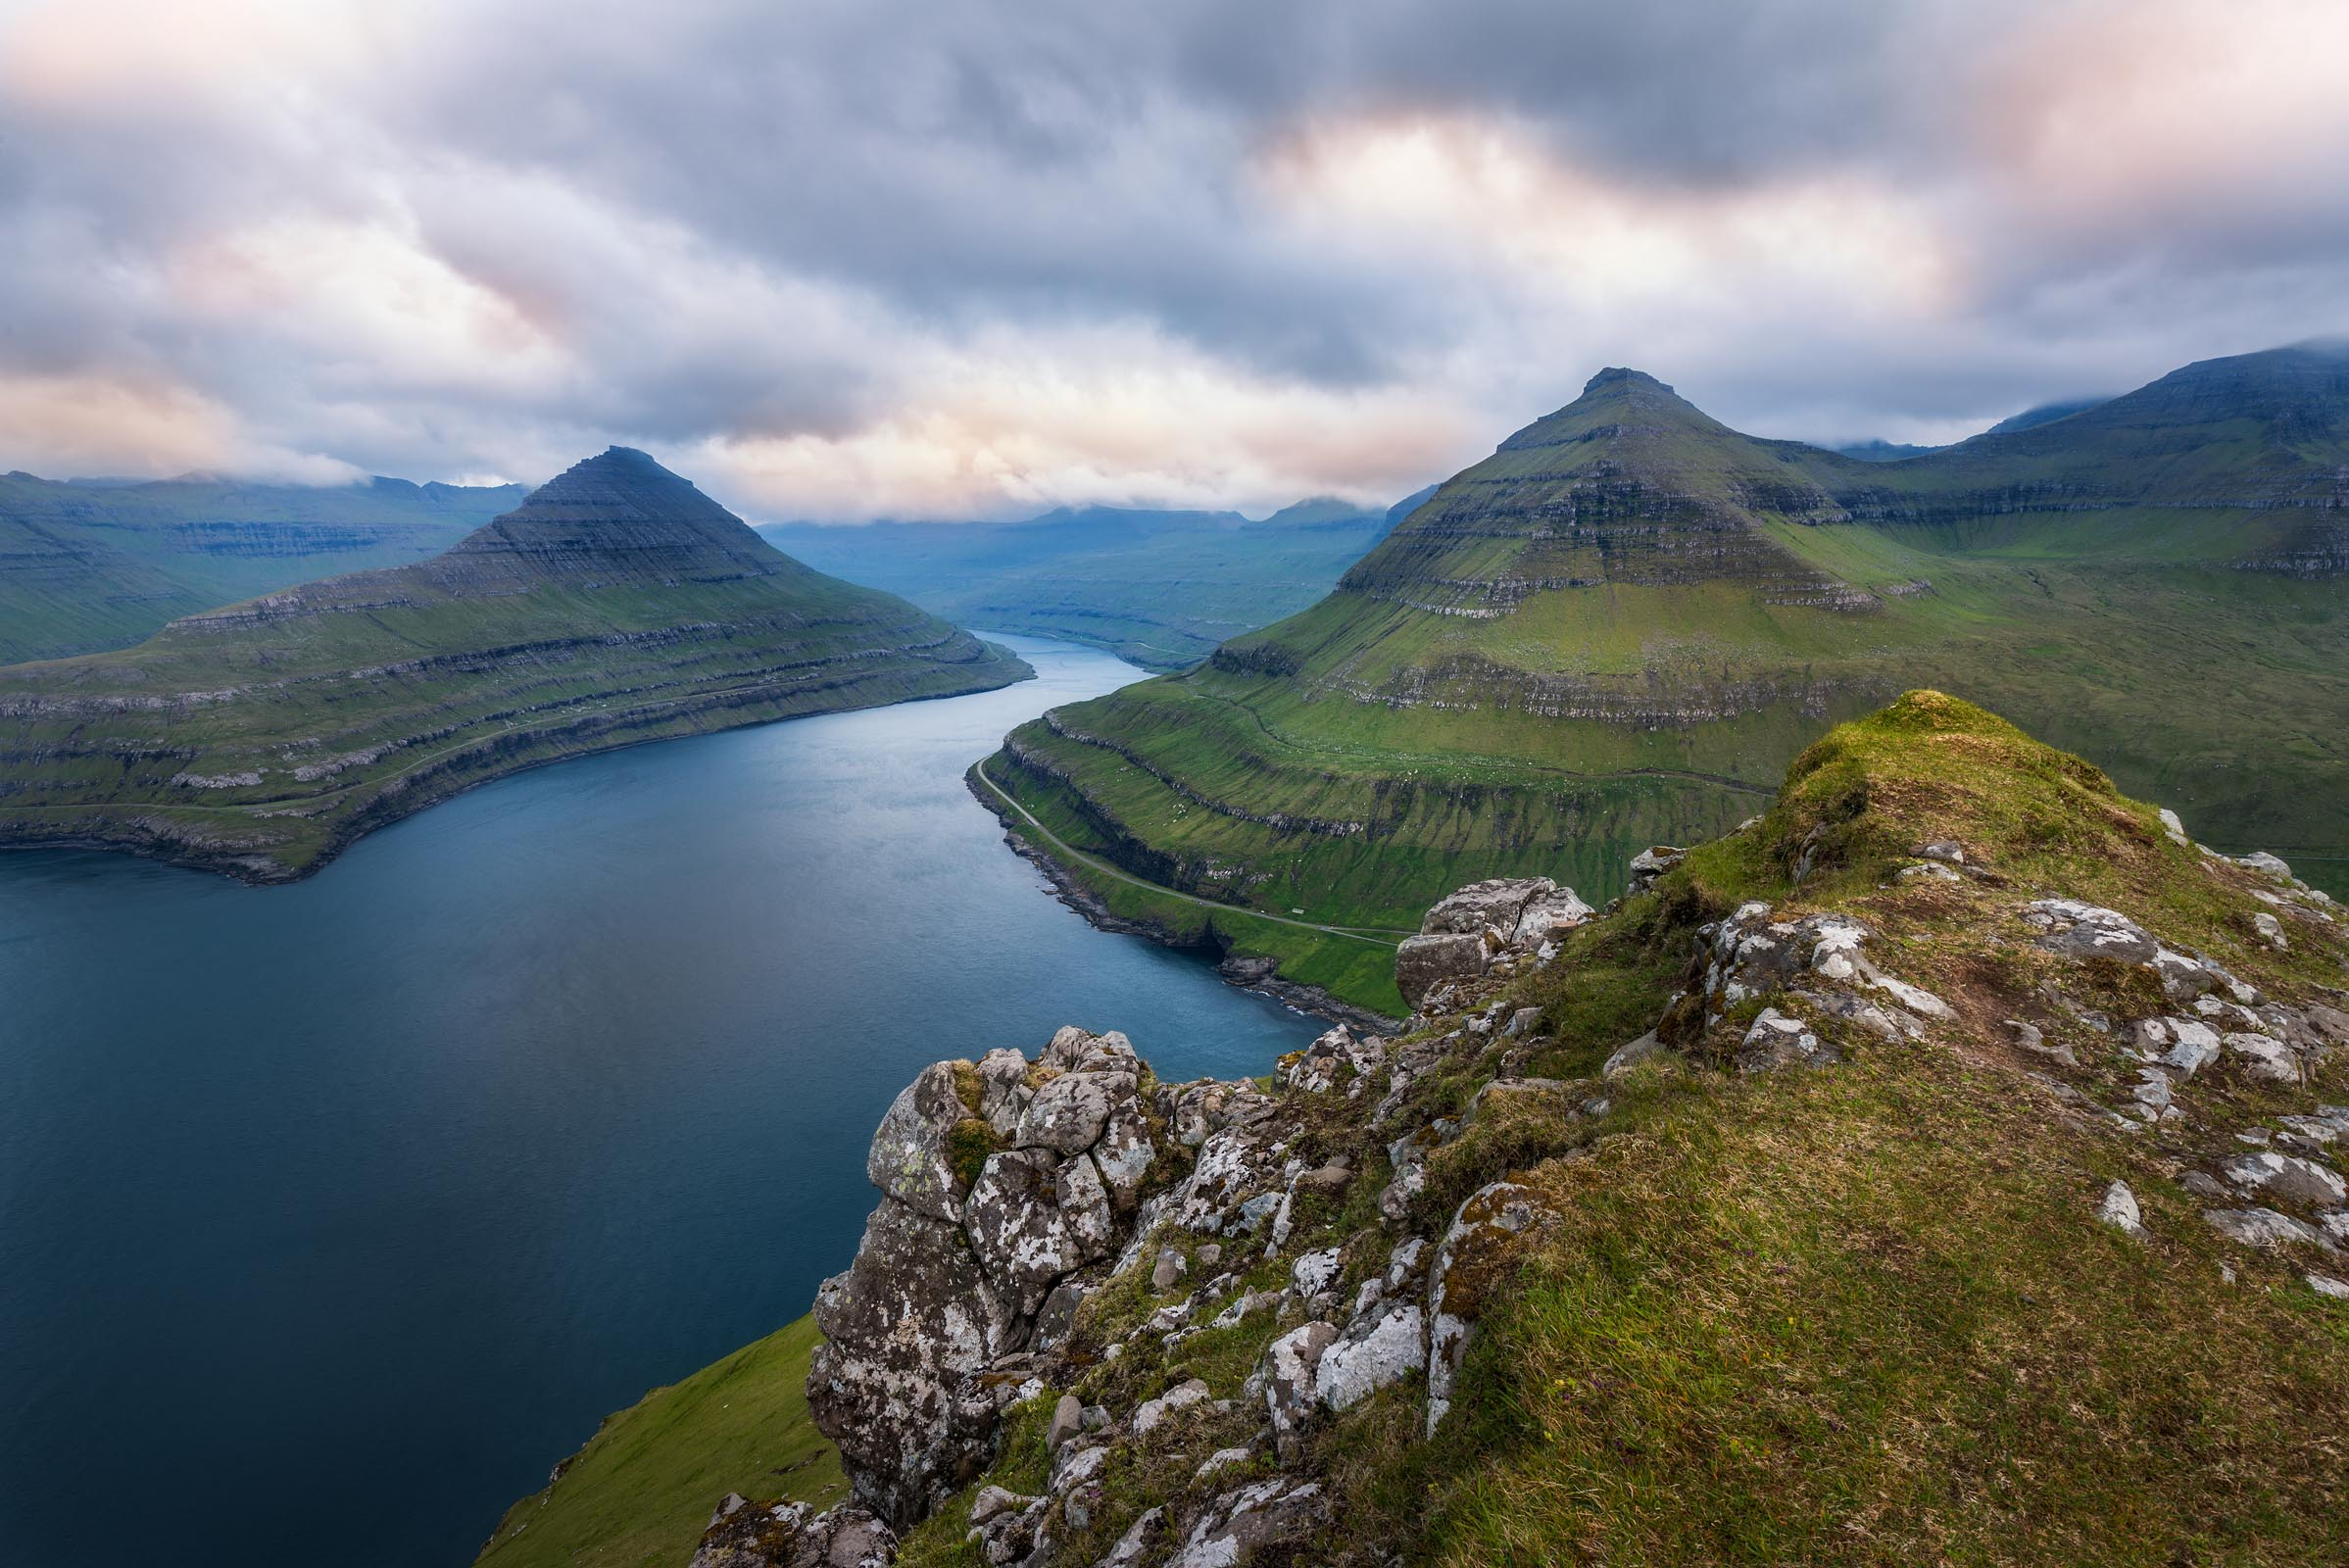 Photograph of Fjord in Gjogv, Faroe Islands by Brent Goldman Photography